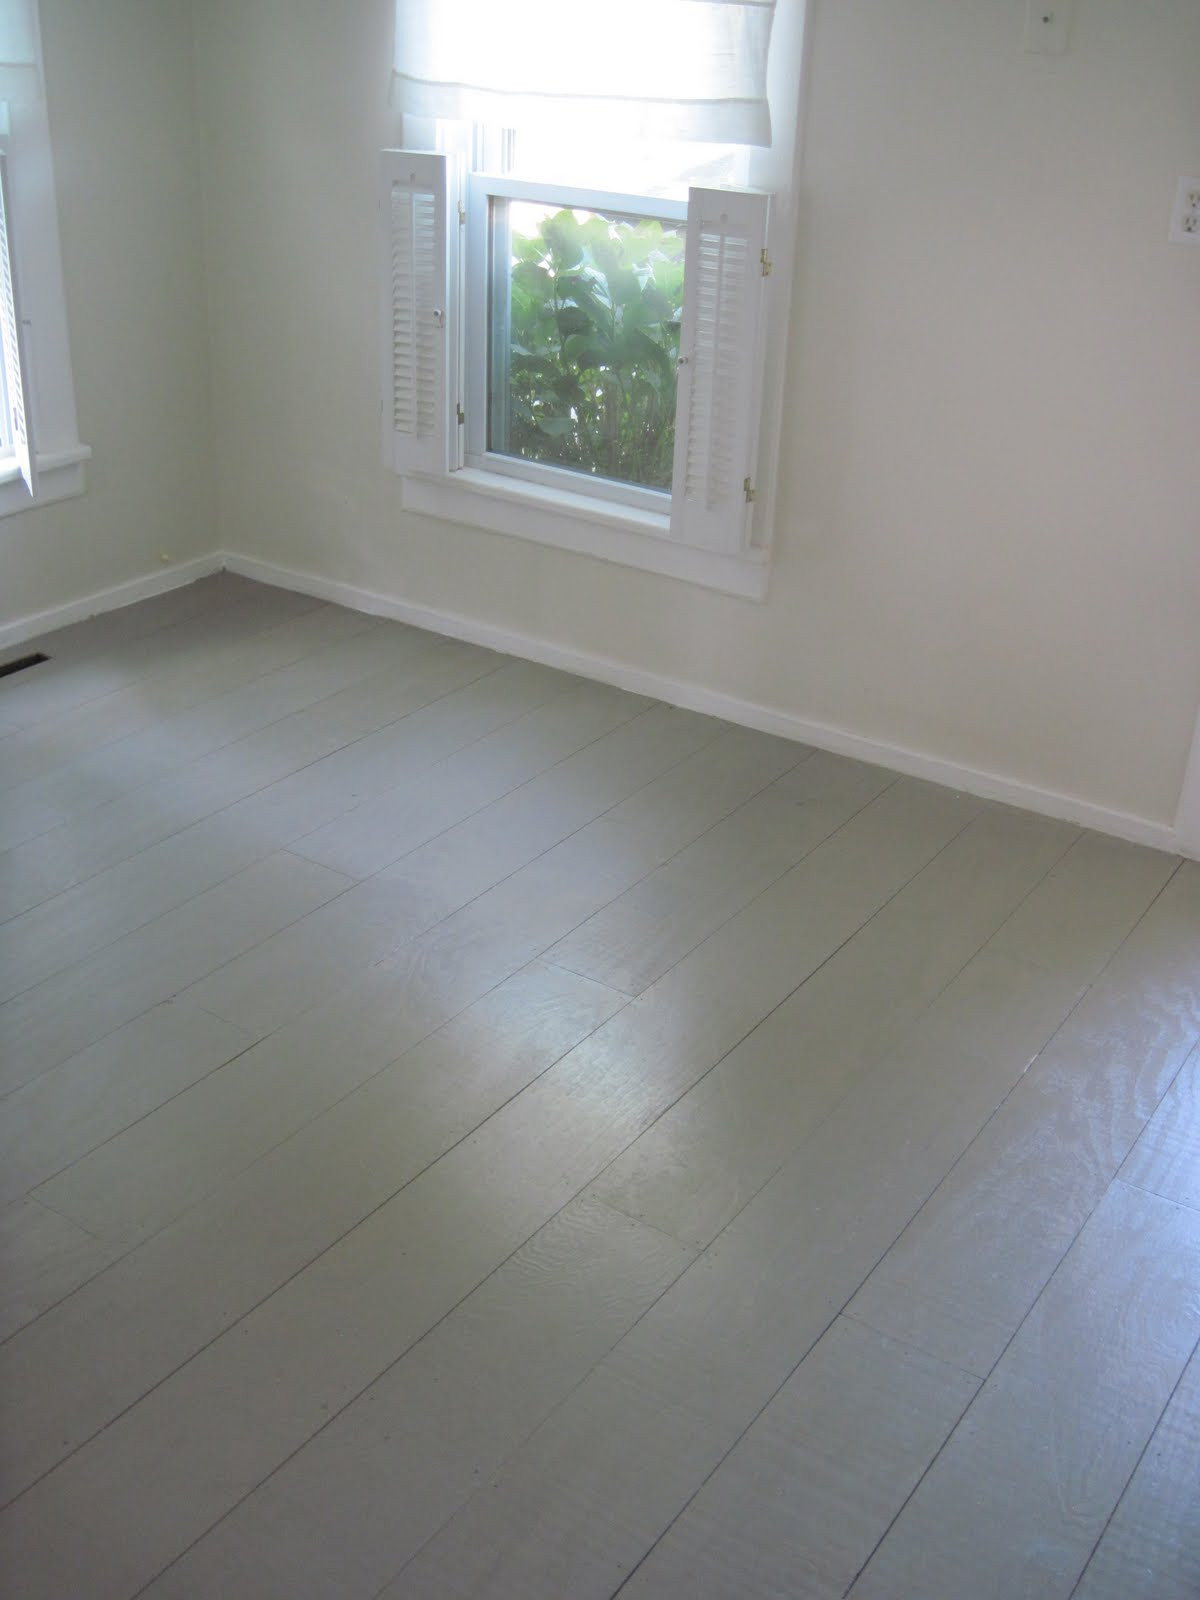 Best ideas about Painted Floors DIY . Save or Pin DIY Plywood Flooring in Kids Rooms Design Dazzle Now.